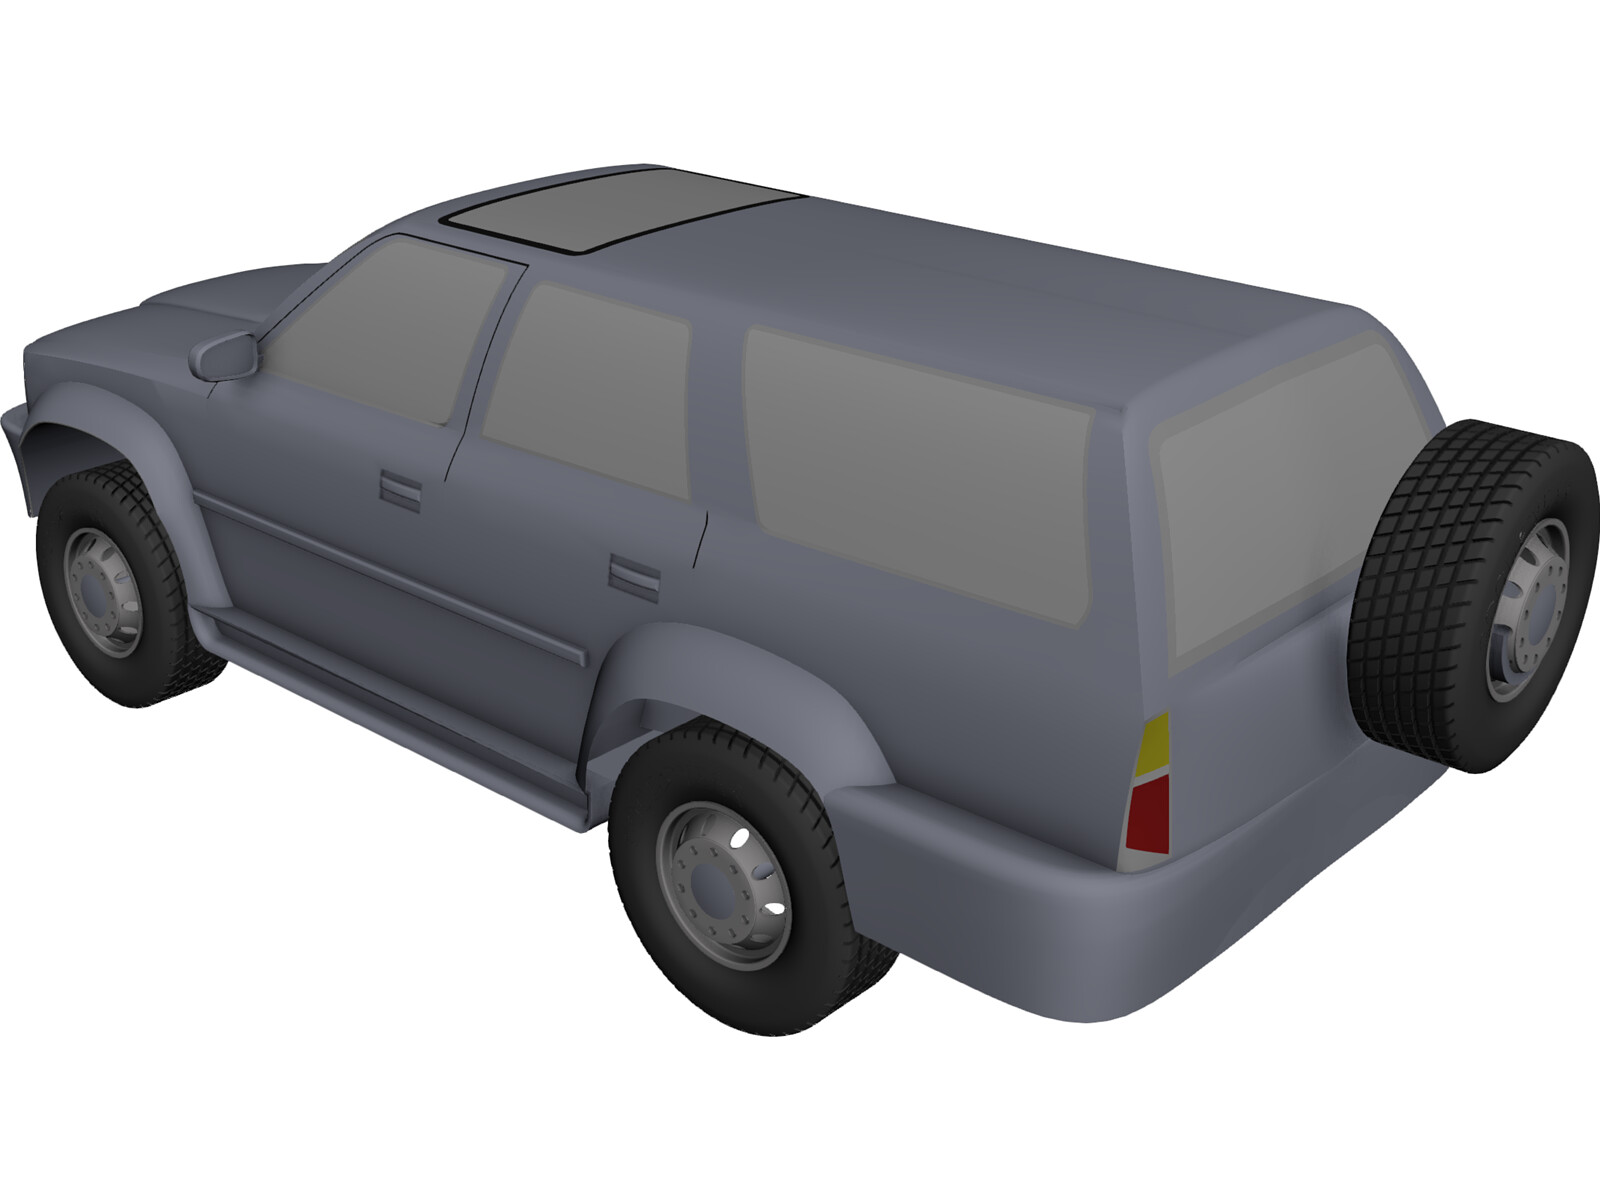 Toyota Hilux 3D CAD Model